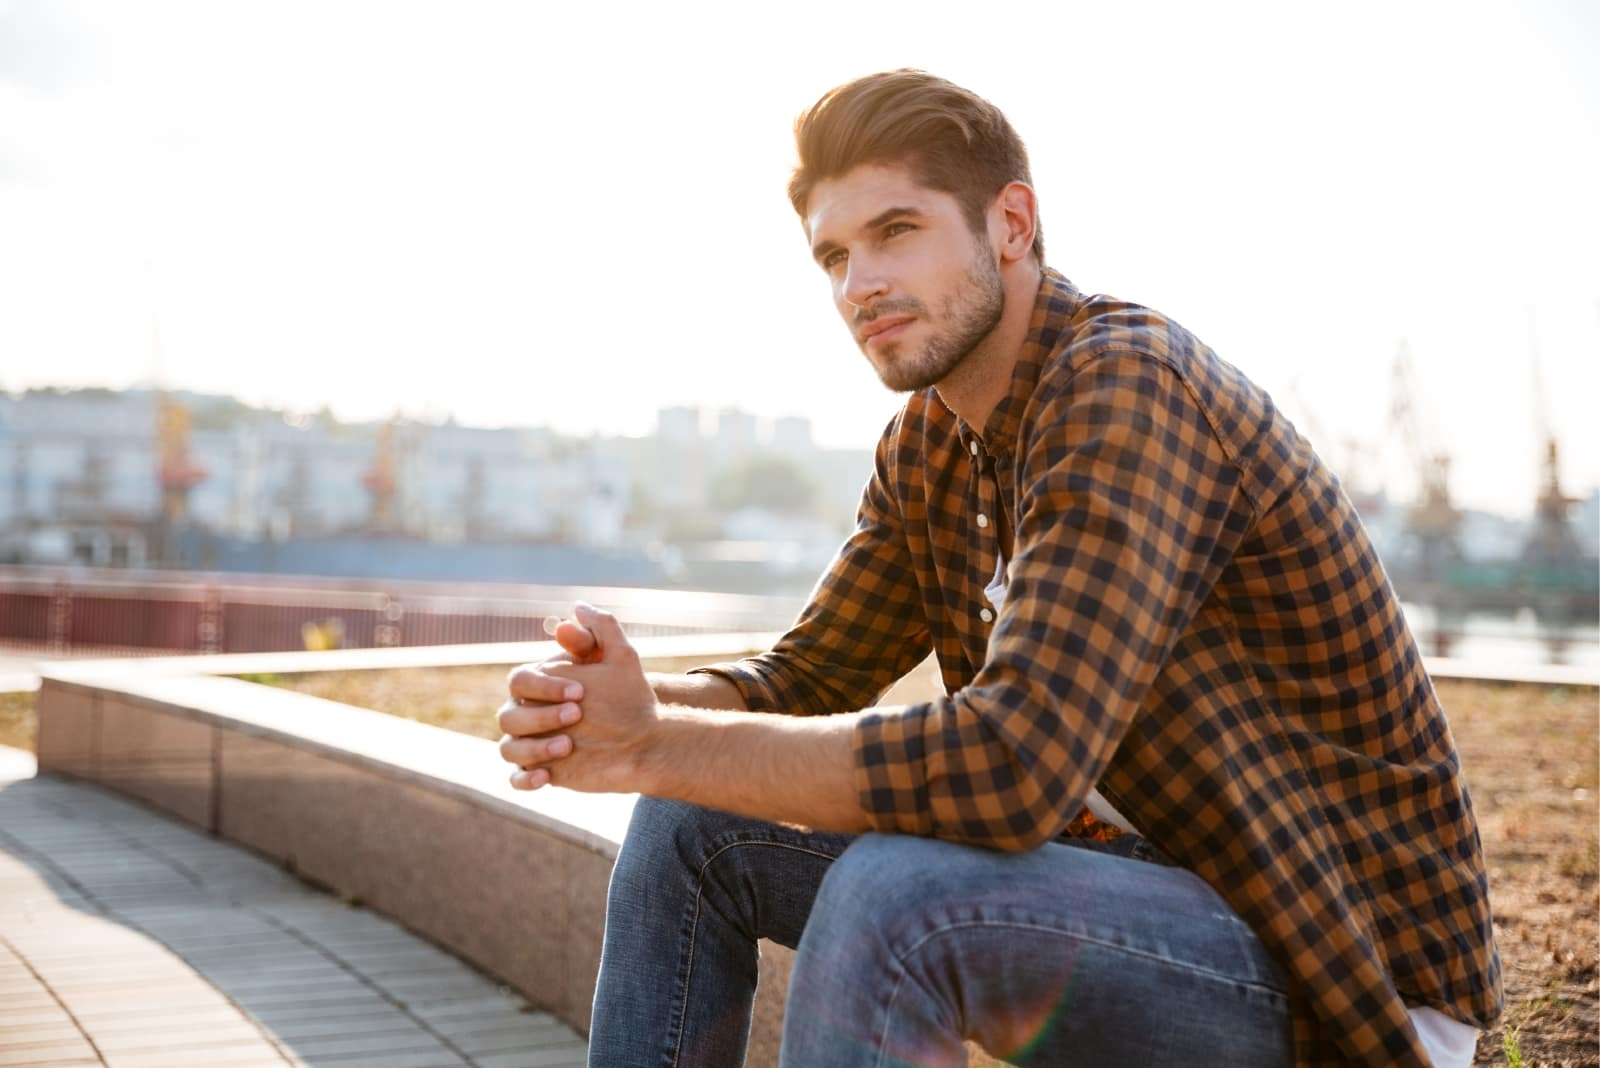 pensive man in plaid shirt sitting outdoor